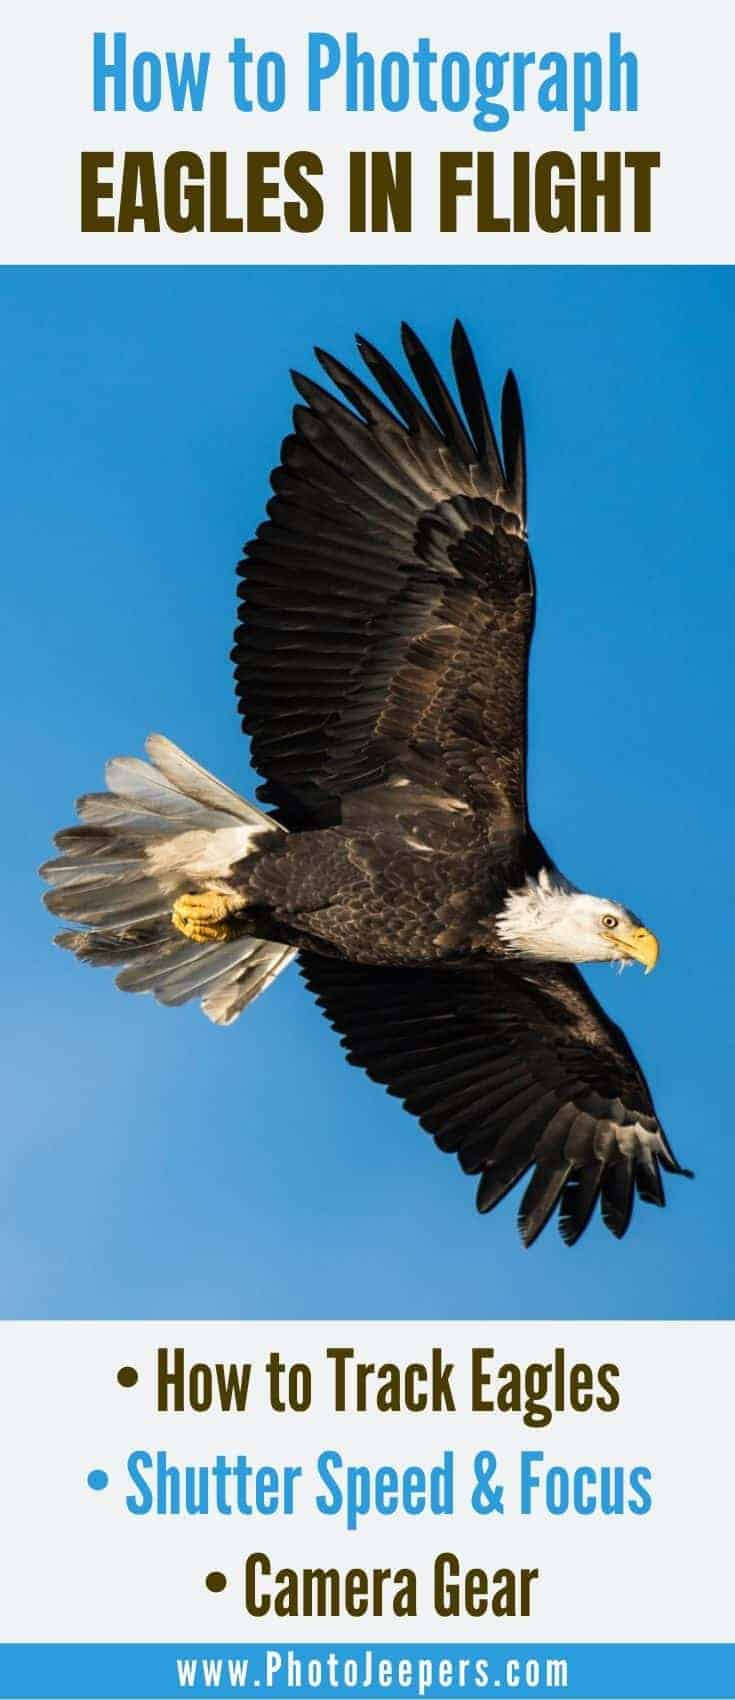 Learn how to photograph eagles in flight.: practice tracking, understand shutter speed and focus settings, have the right camera gear. #photography #eagles #baldeagles #photojeepers